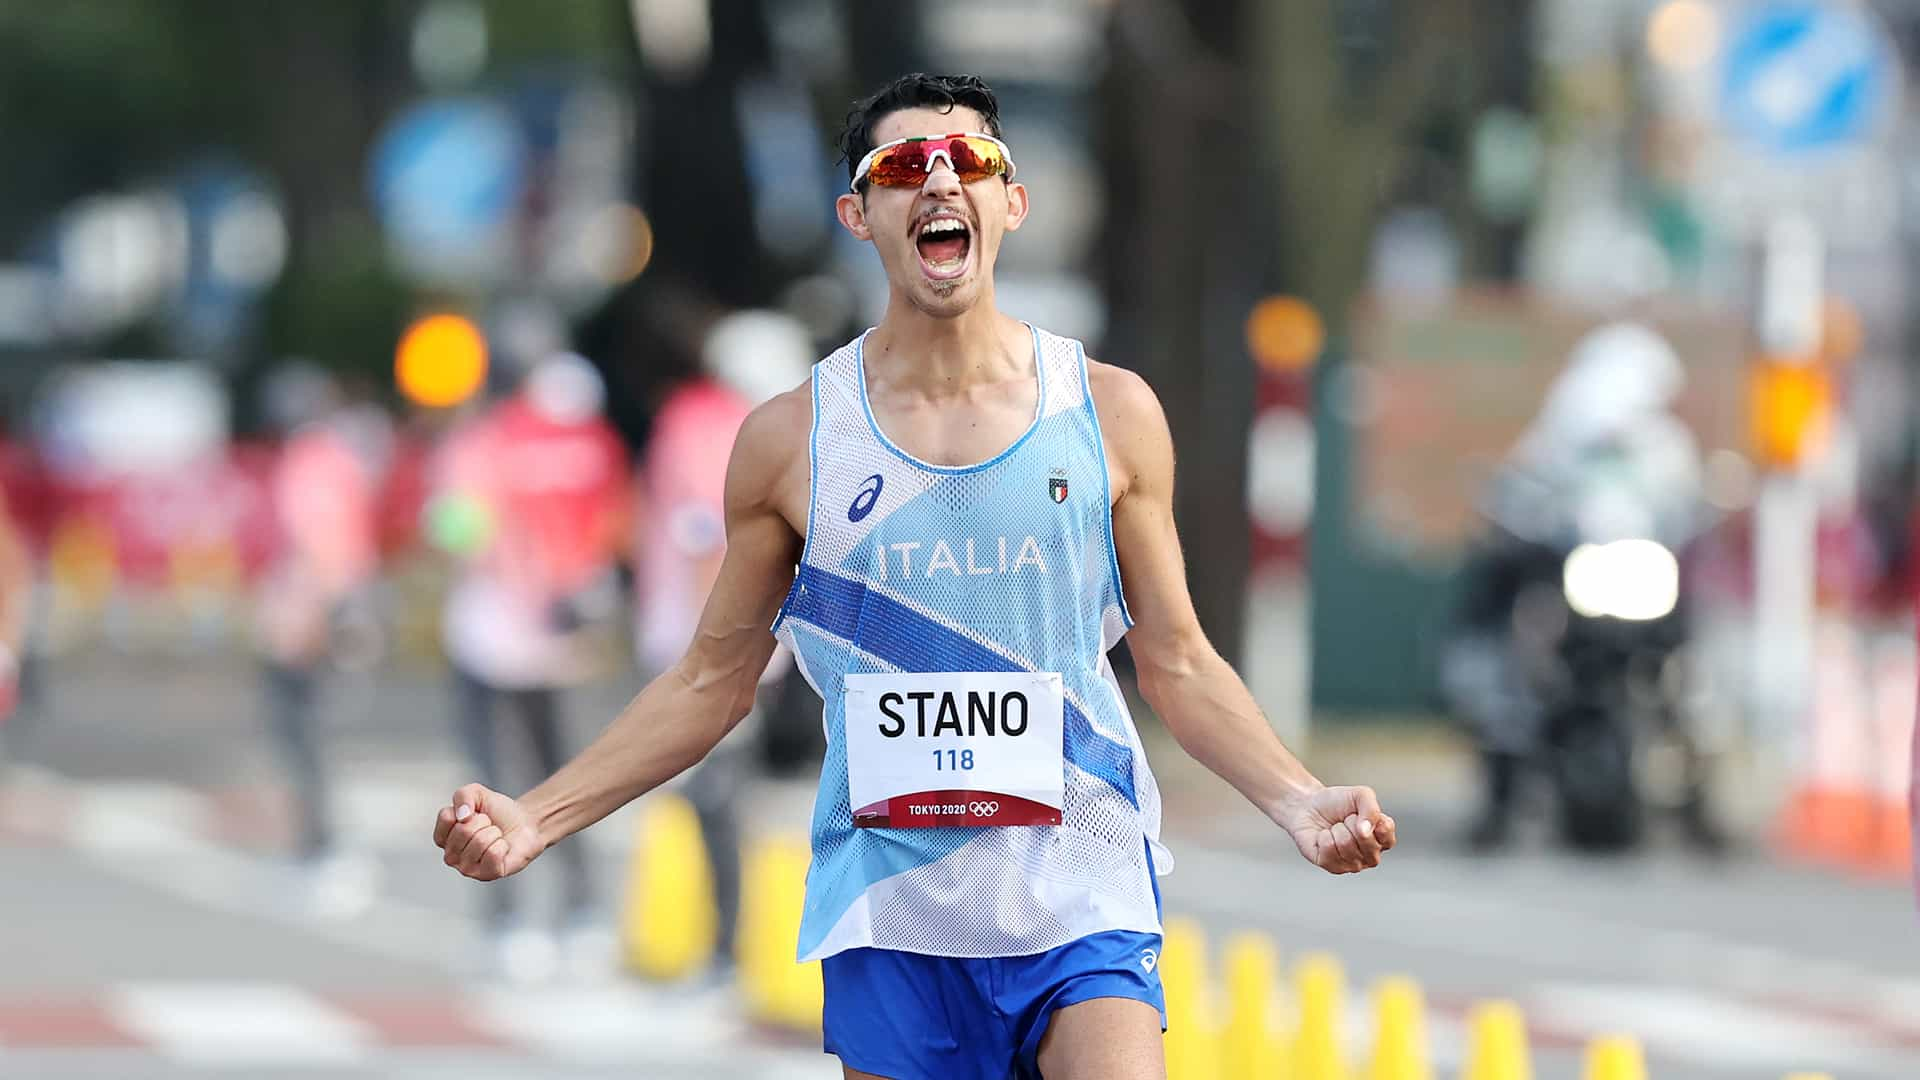 Massimo Stano celebrates his gold medal win in the men's 20km walk. (credit: Getty Images)